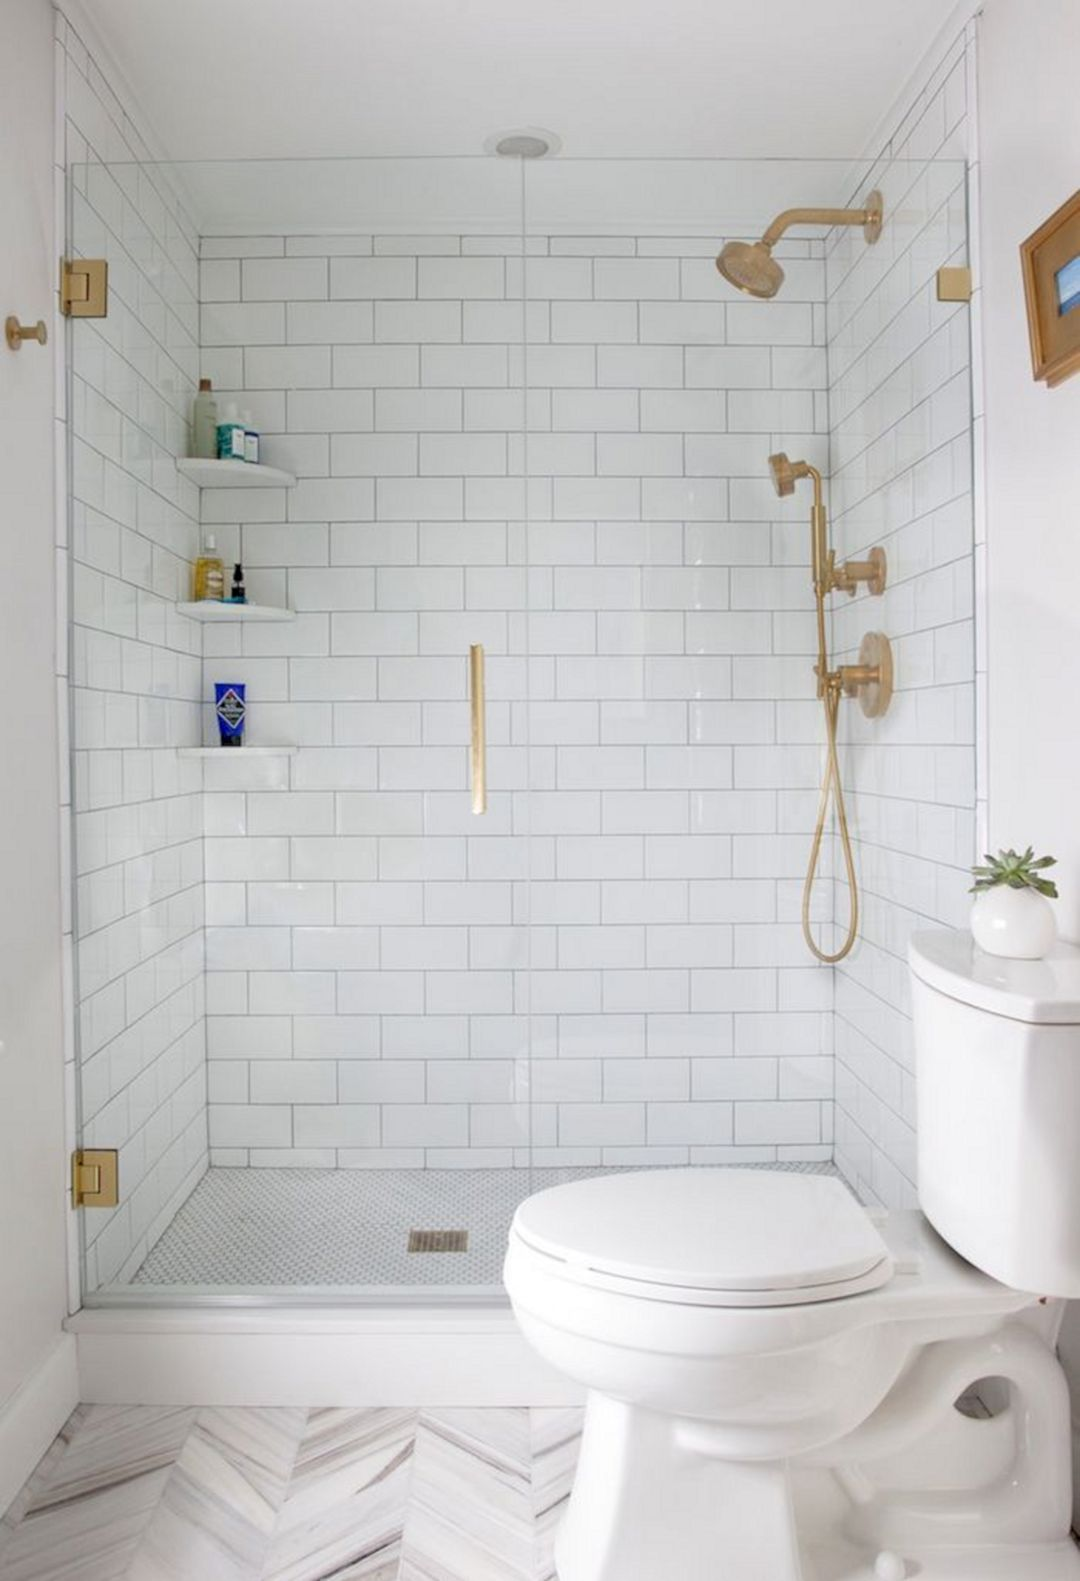 Subway Tile Walk In Shower Ideas 3 24 Bathroom Design